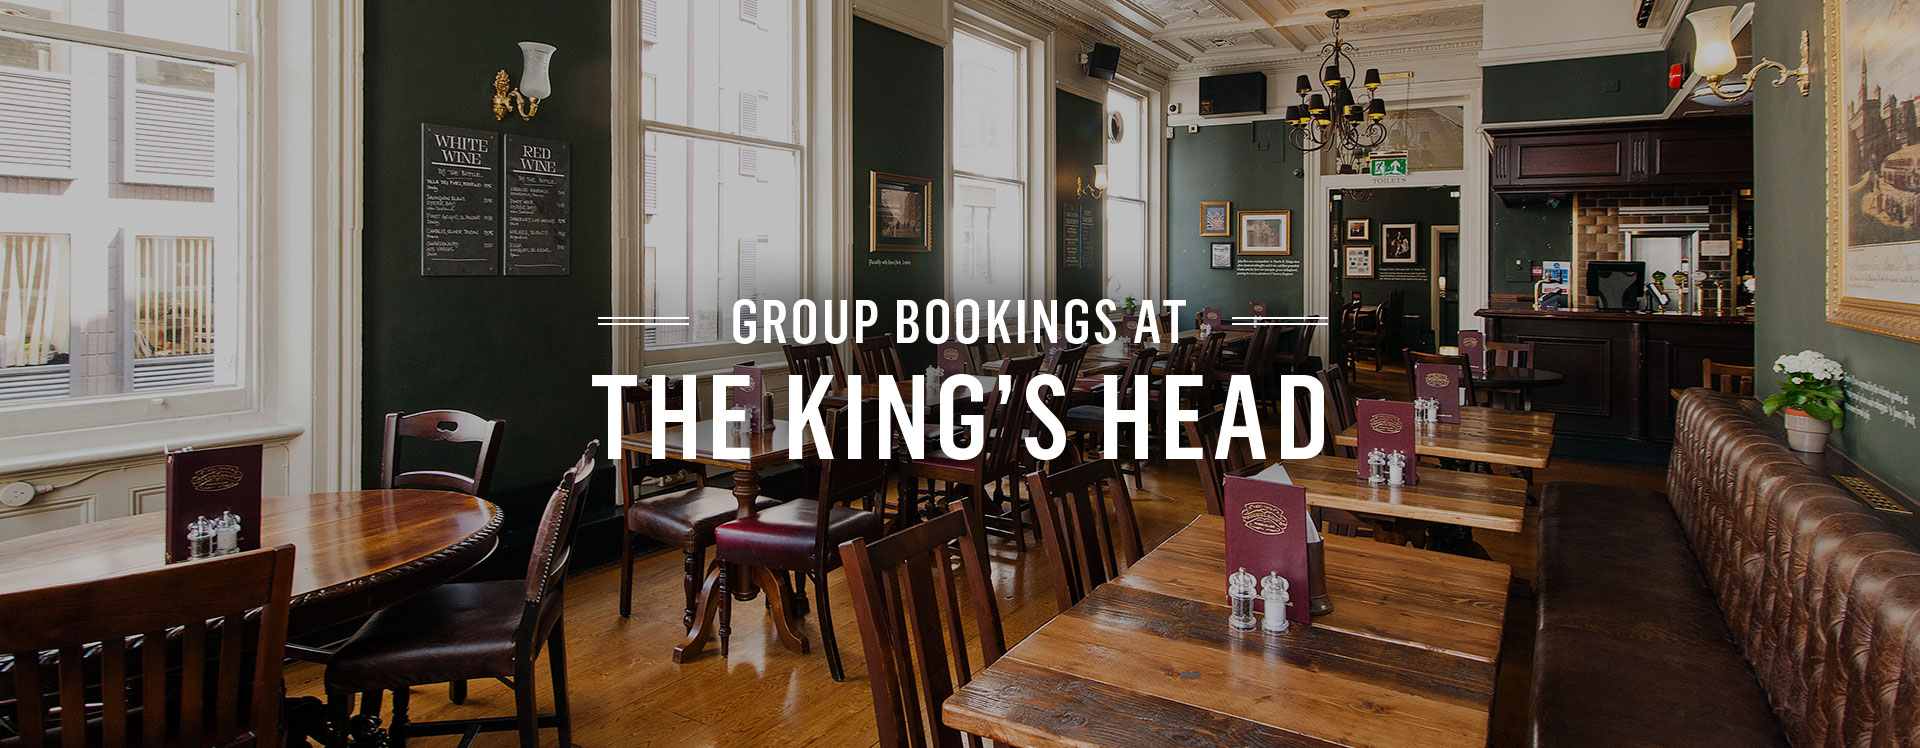 Group Bookings at The King's Head